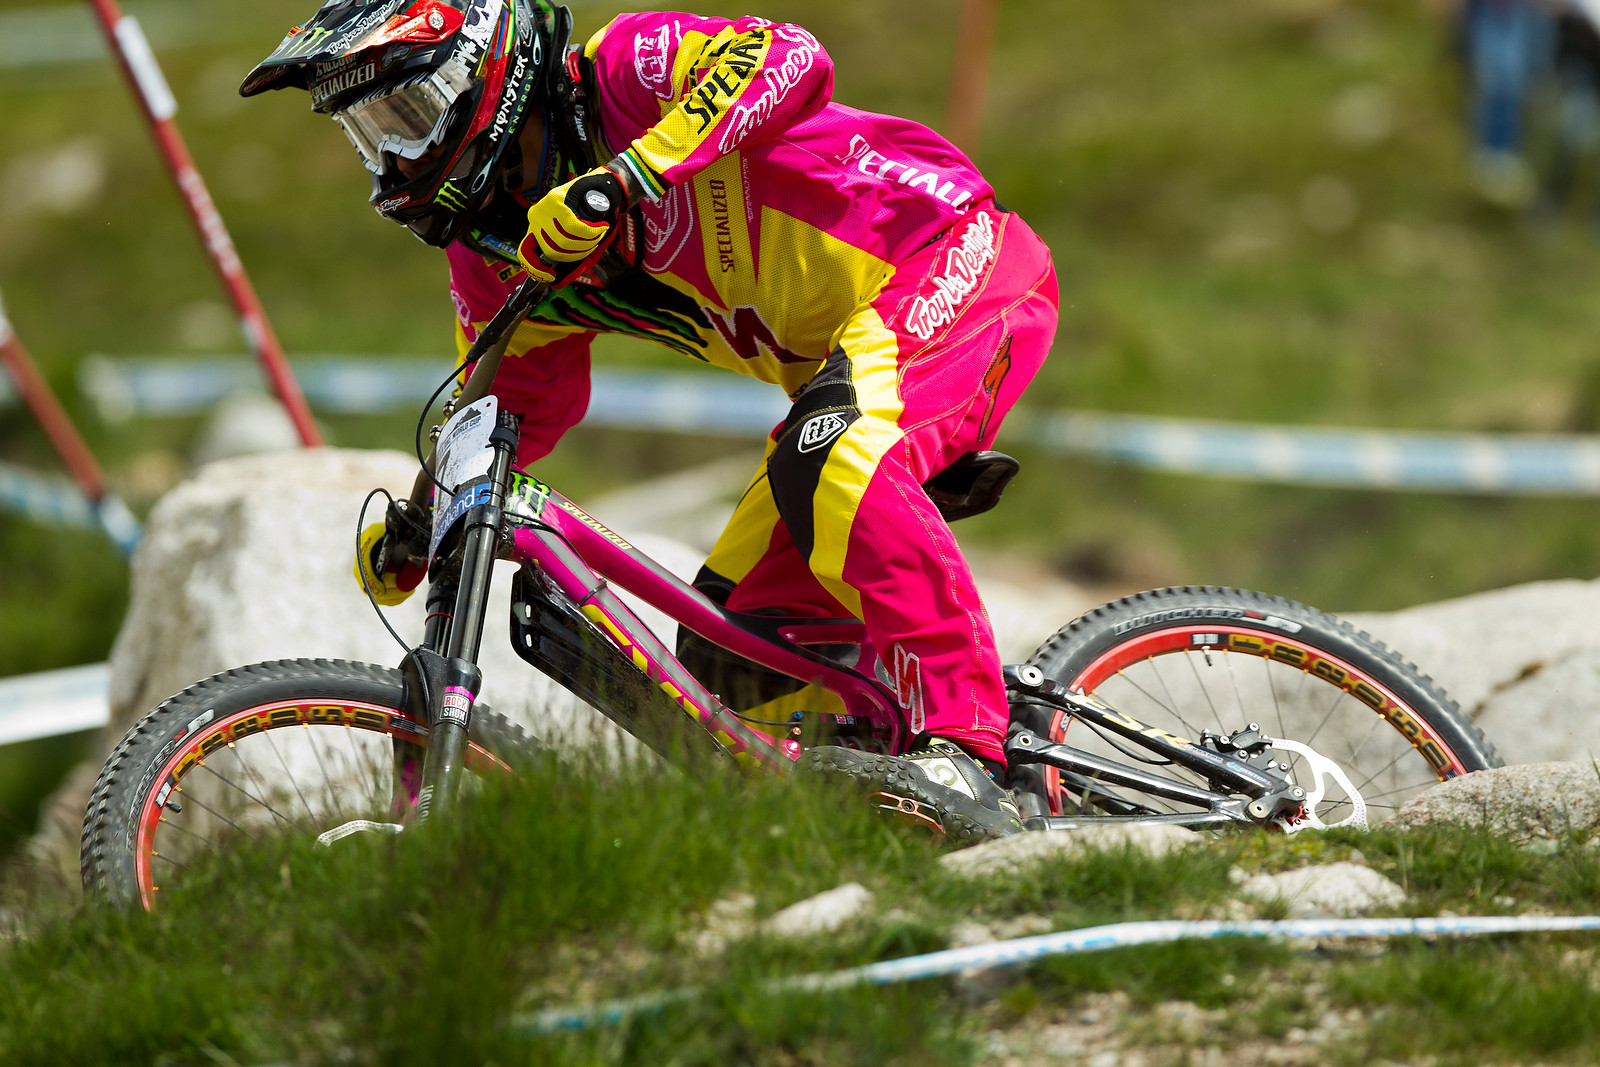 Sam Hill's Pink S-Works Carbon Demo and TLD Kit are up for Auction - 2012 UCI World Cup, Fort WIlliam Scotland, Day 2 - Mountain Biking Pictures - Vital MTB